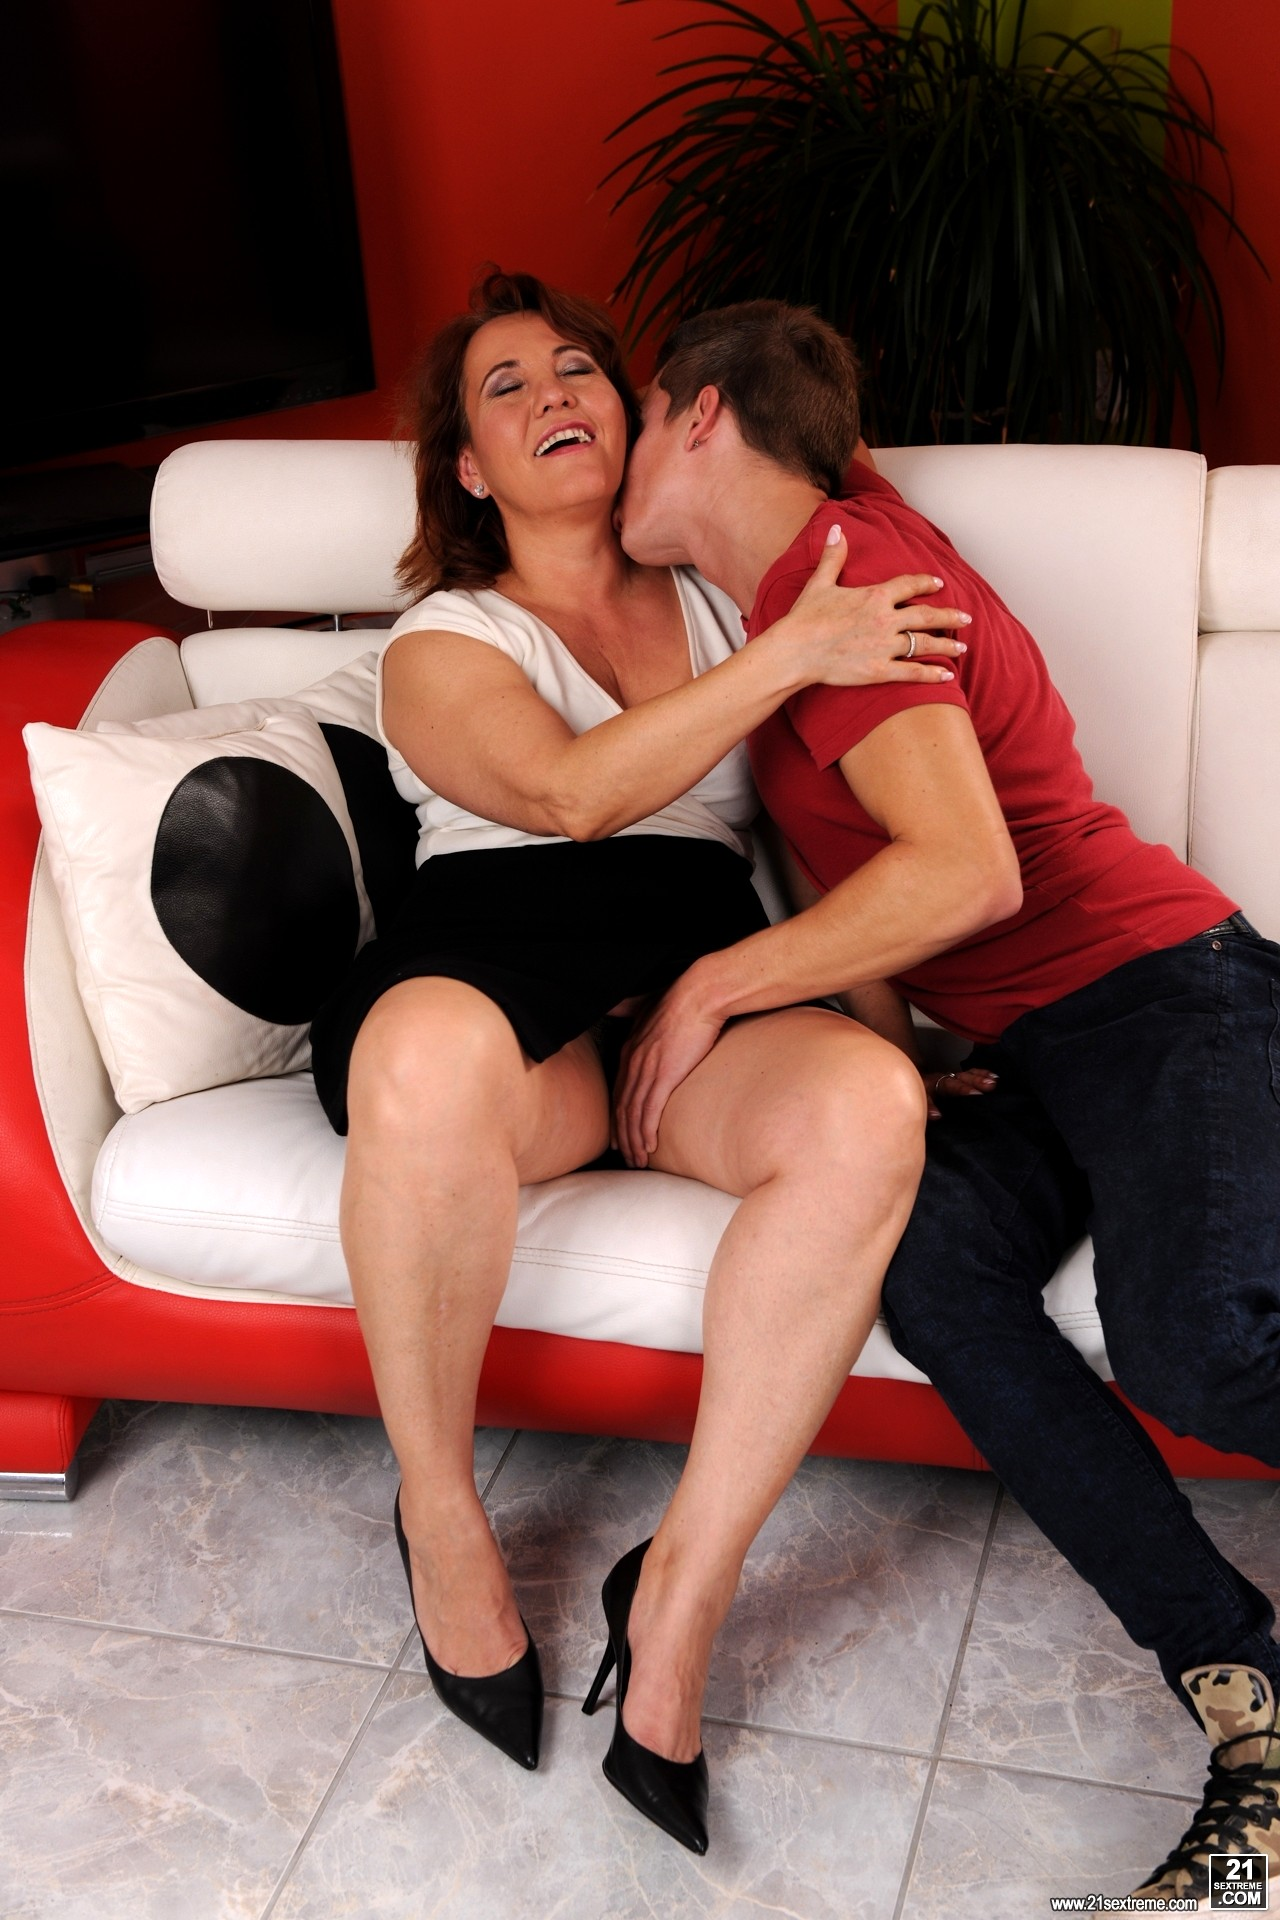 Sex Hd Mobile Pics 21 Sextury Red Mary Deluxe Mature Vr Porn-7715